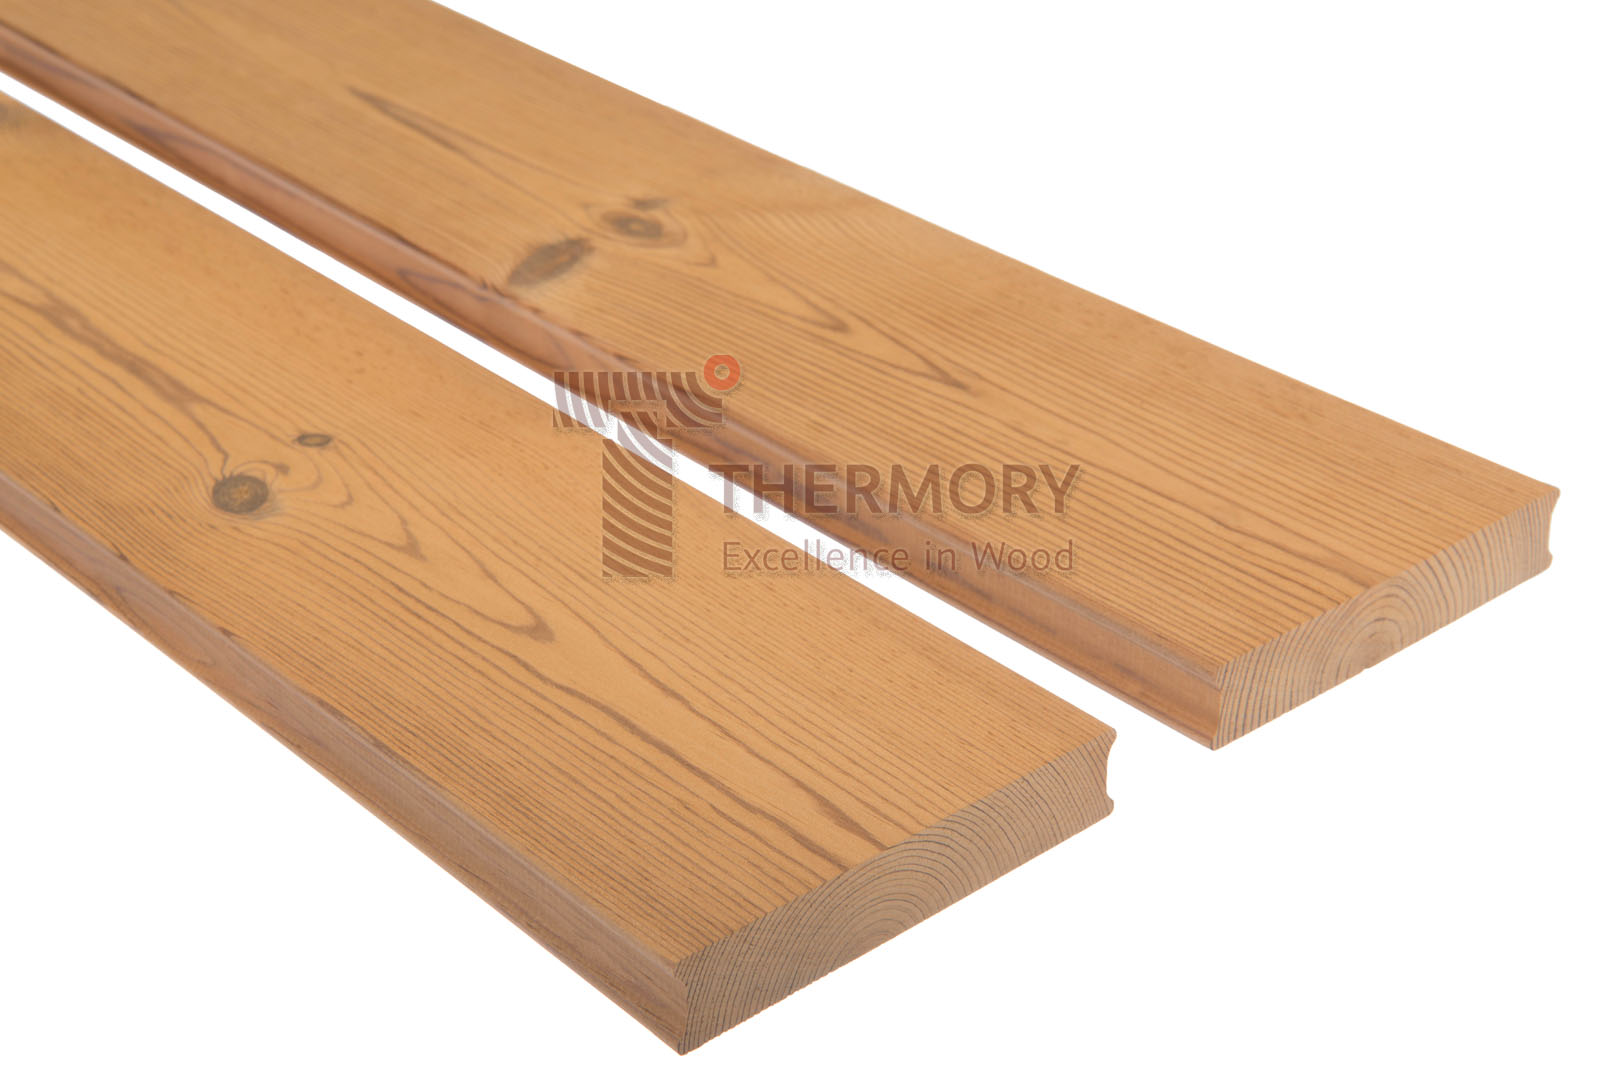 D34 26x140mm (Country finish)